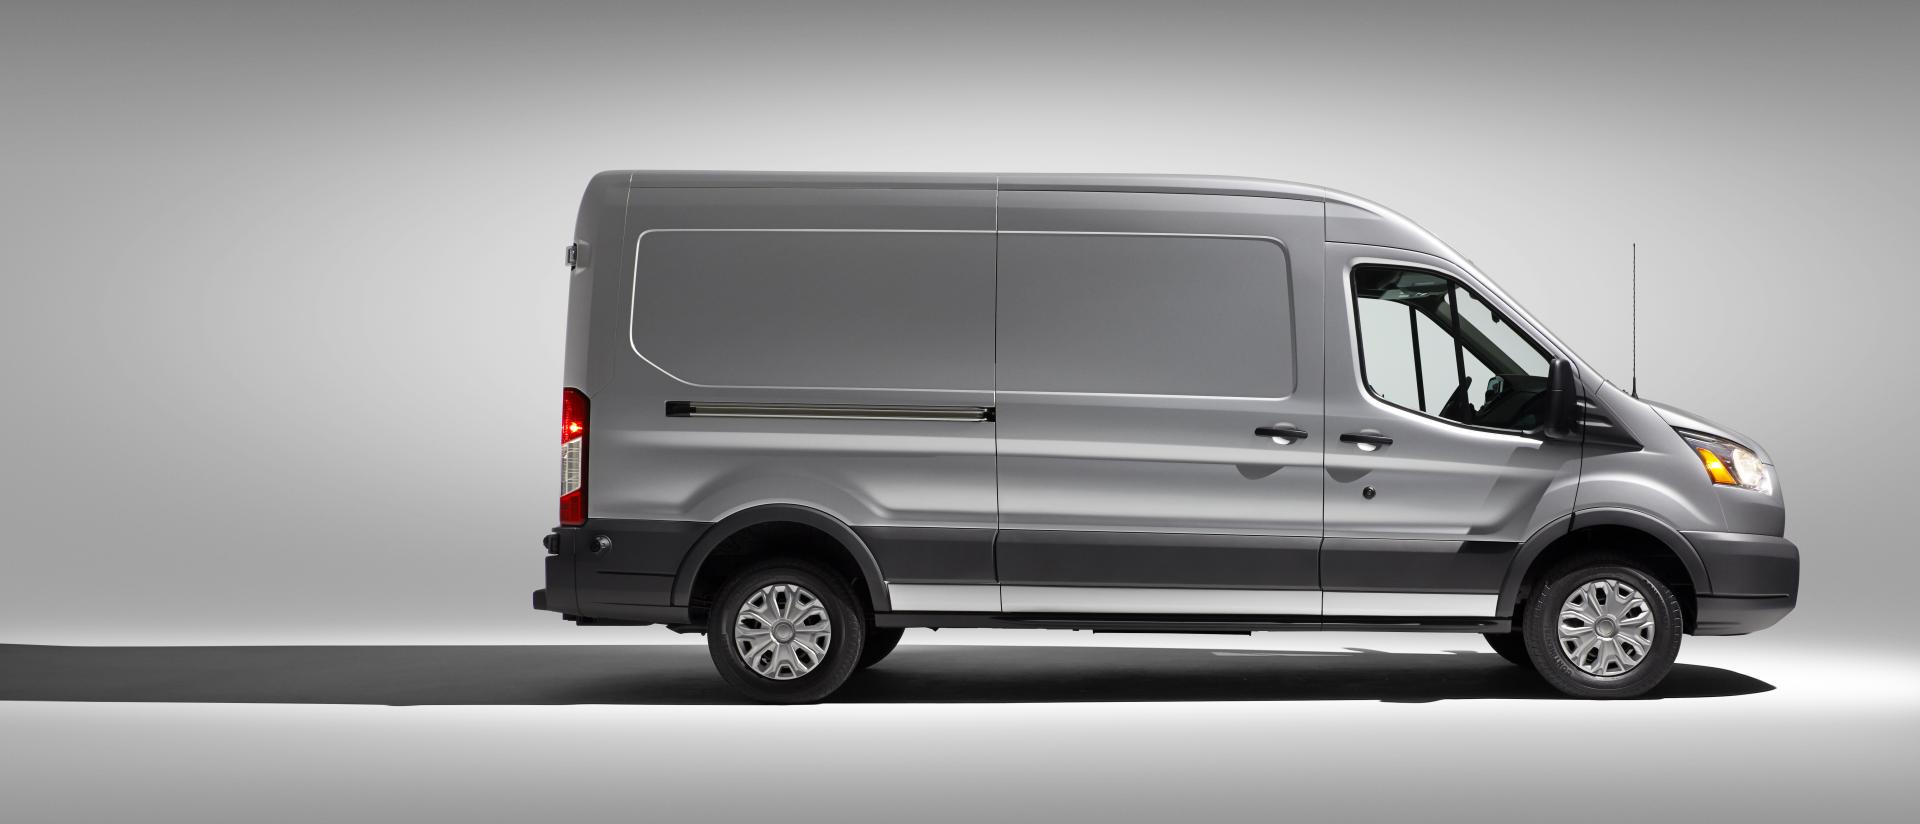 share gallery van best image download transit and ford